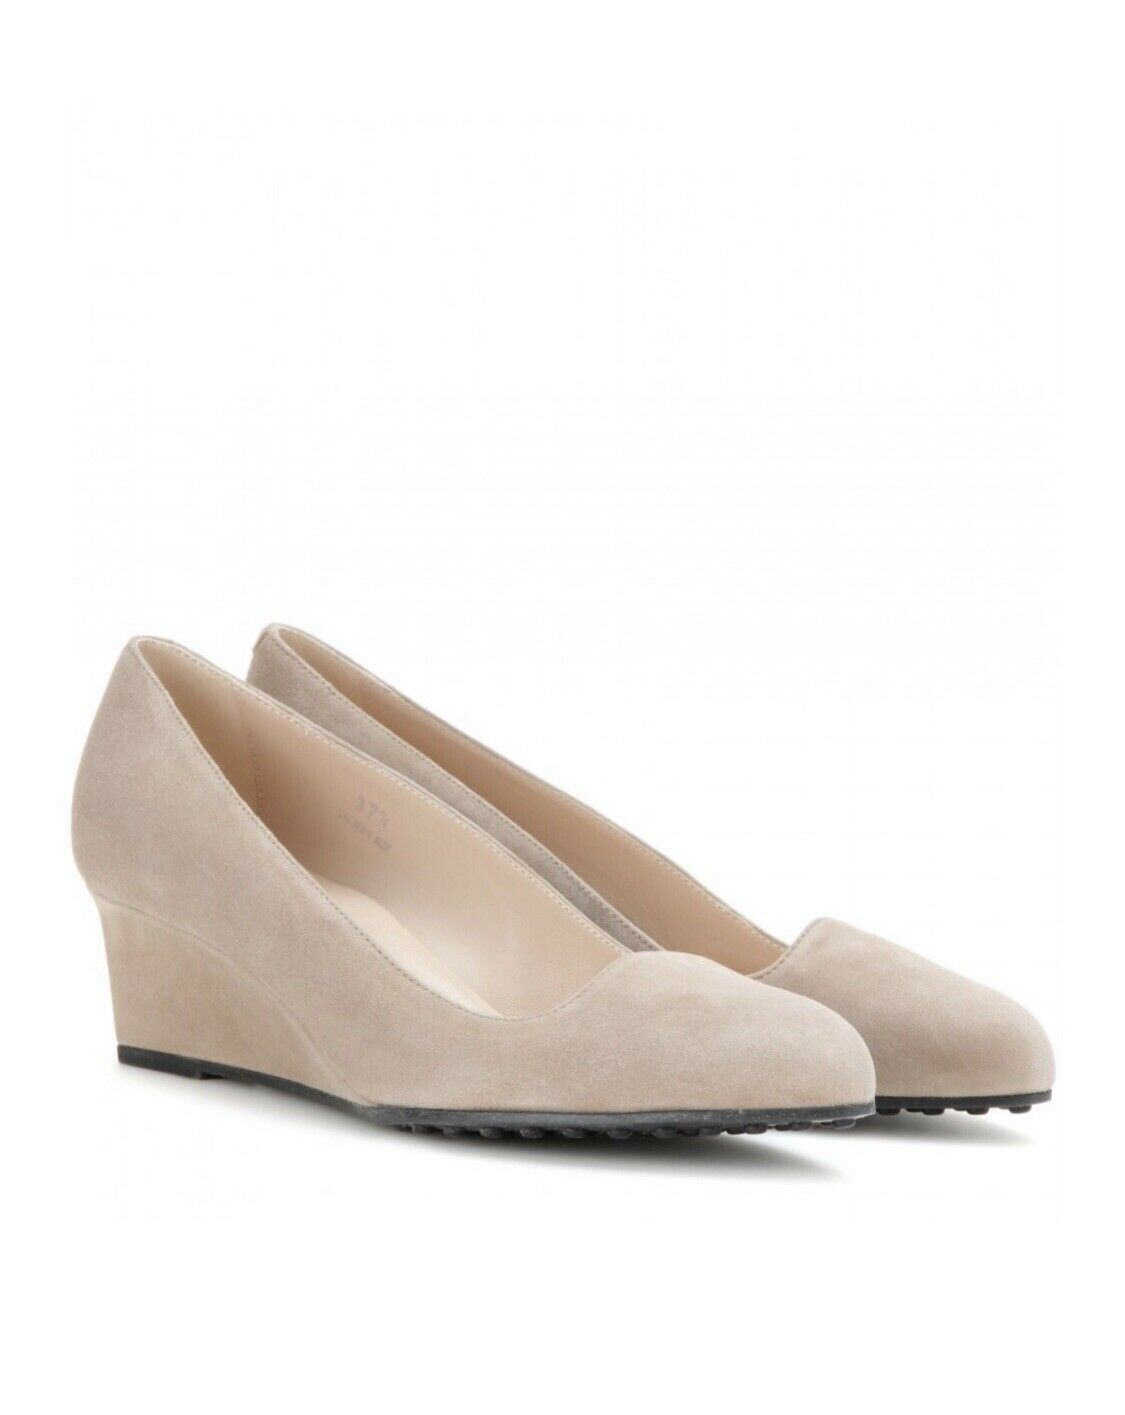 Tod's Stone Beige Suede Leather Mid Heel Wedge Court shoes UK5.5 EU38 US8